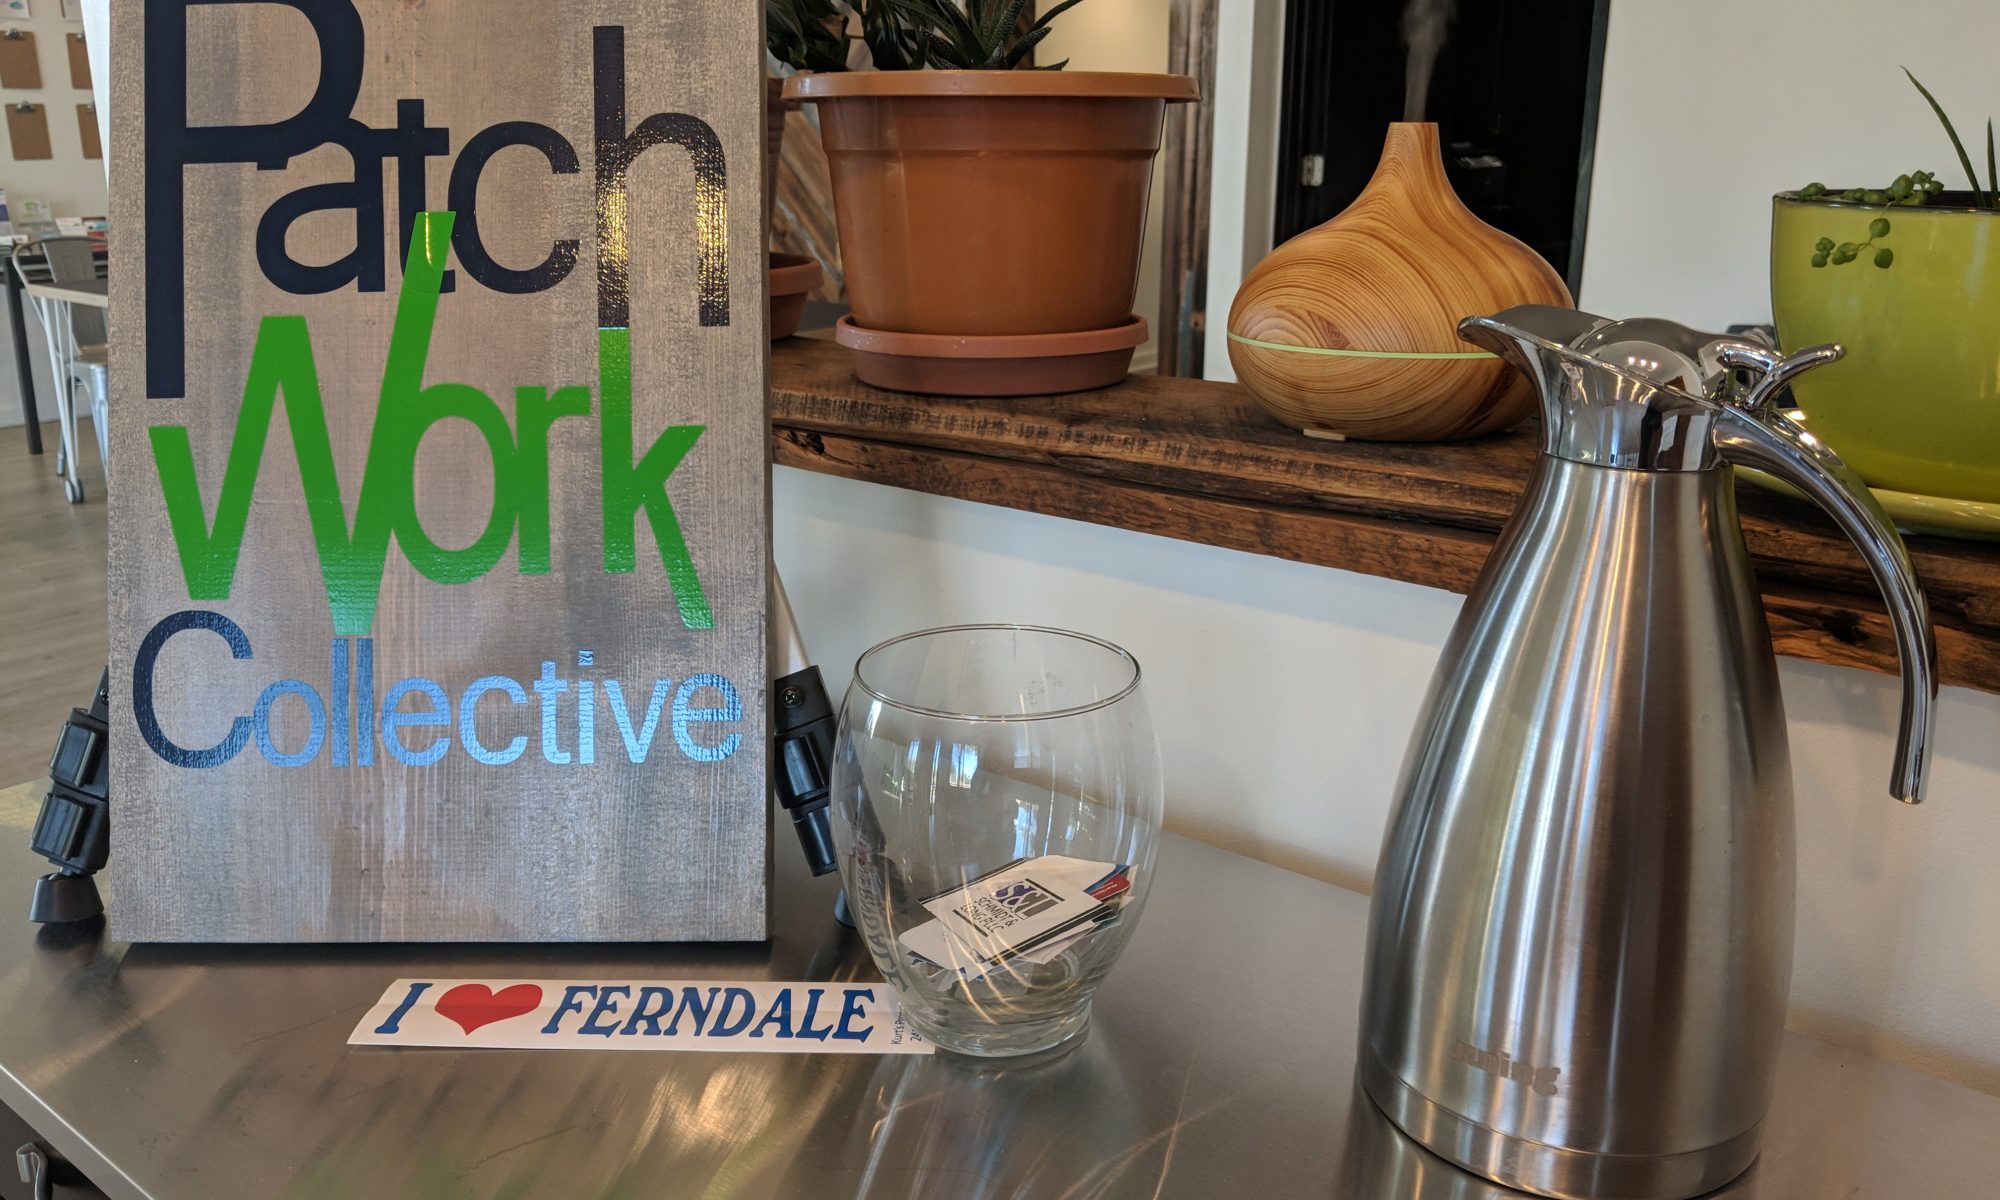 PatchWork Collective, a coworking space in Ferndale, MI